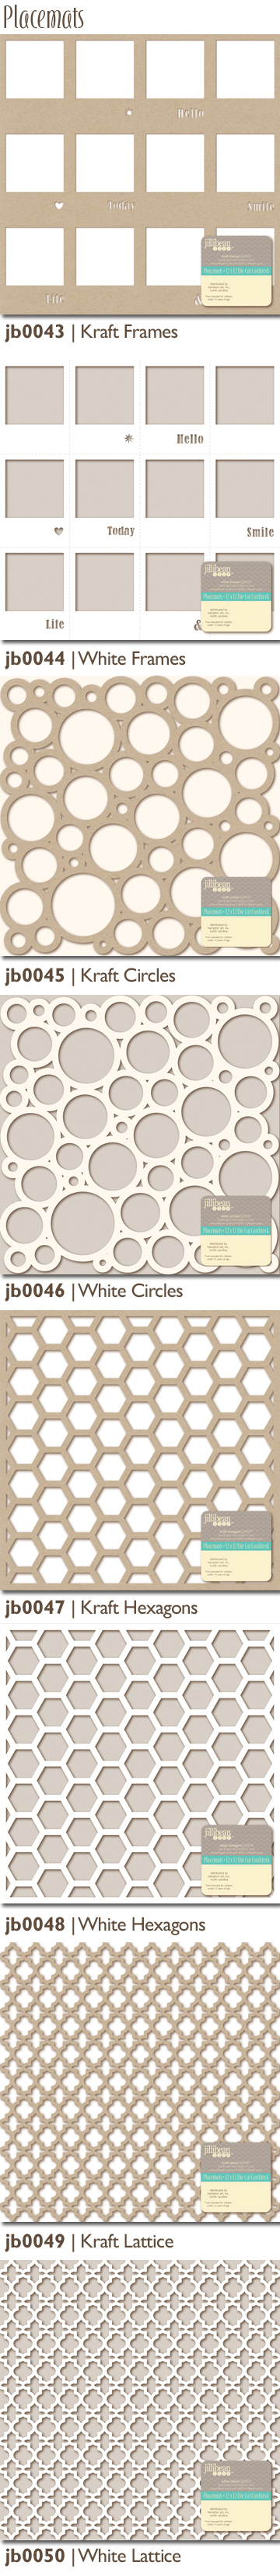 Placemats_Winter2013_BlogPreview